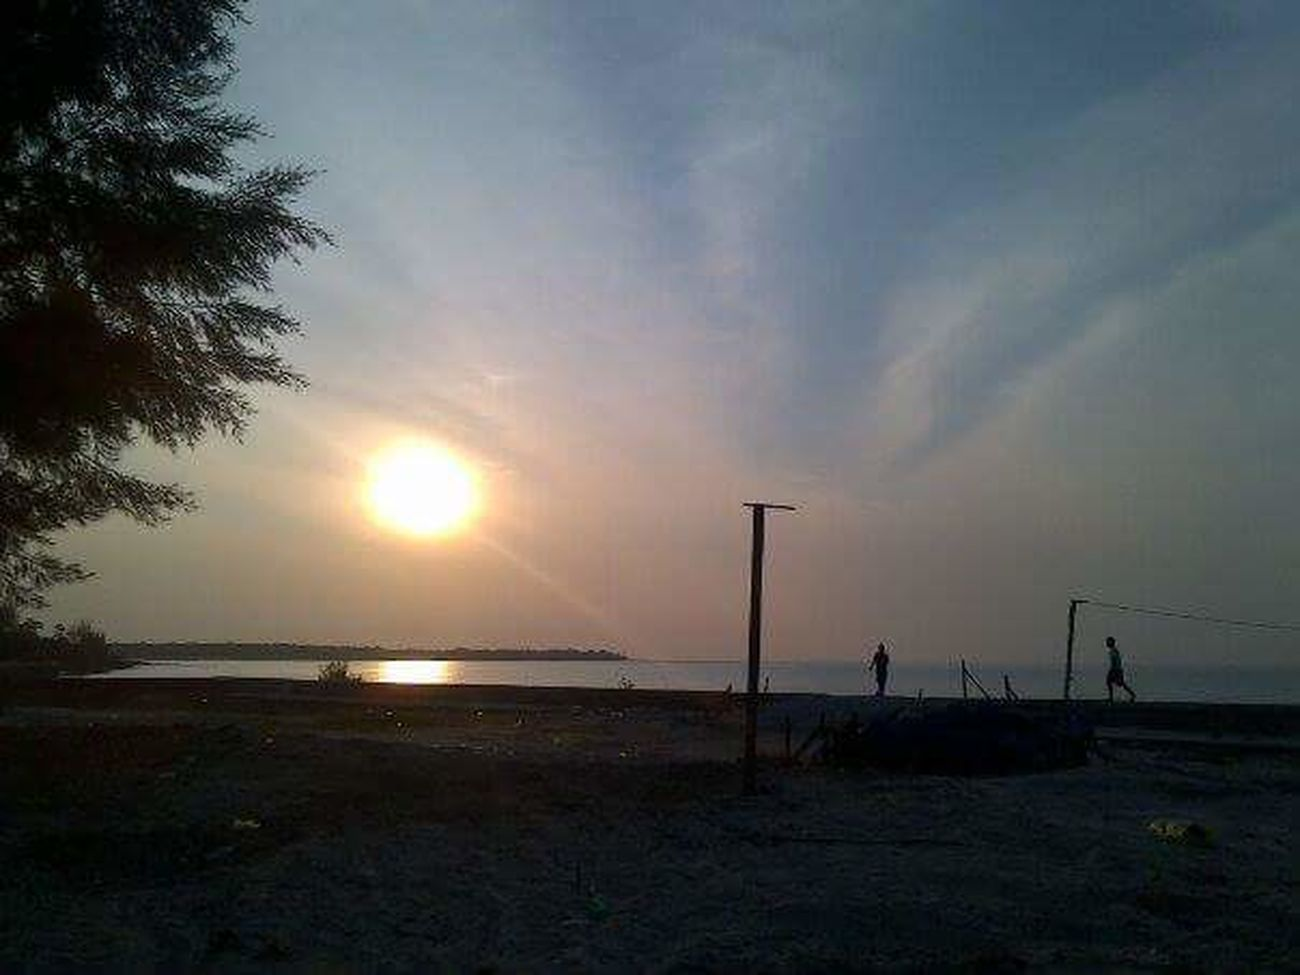 Rupatisland beach Sunset